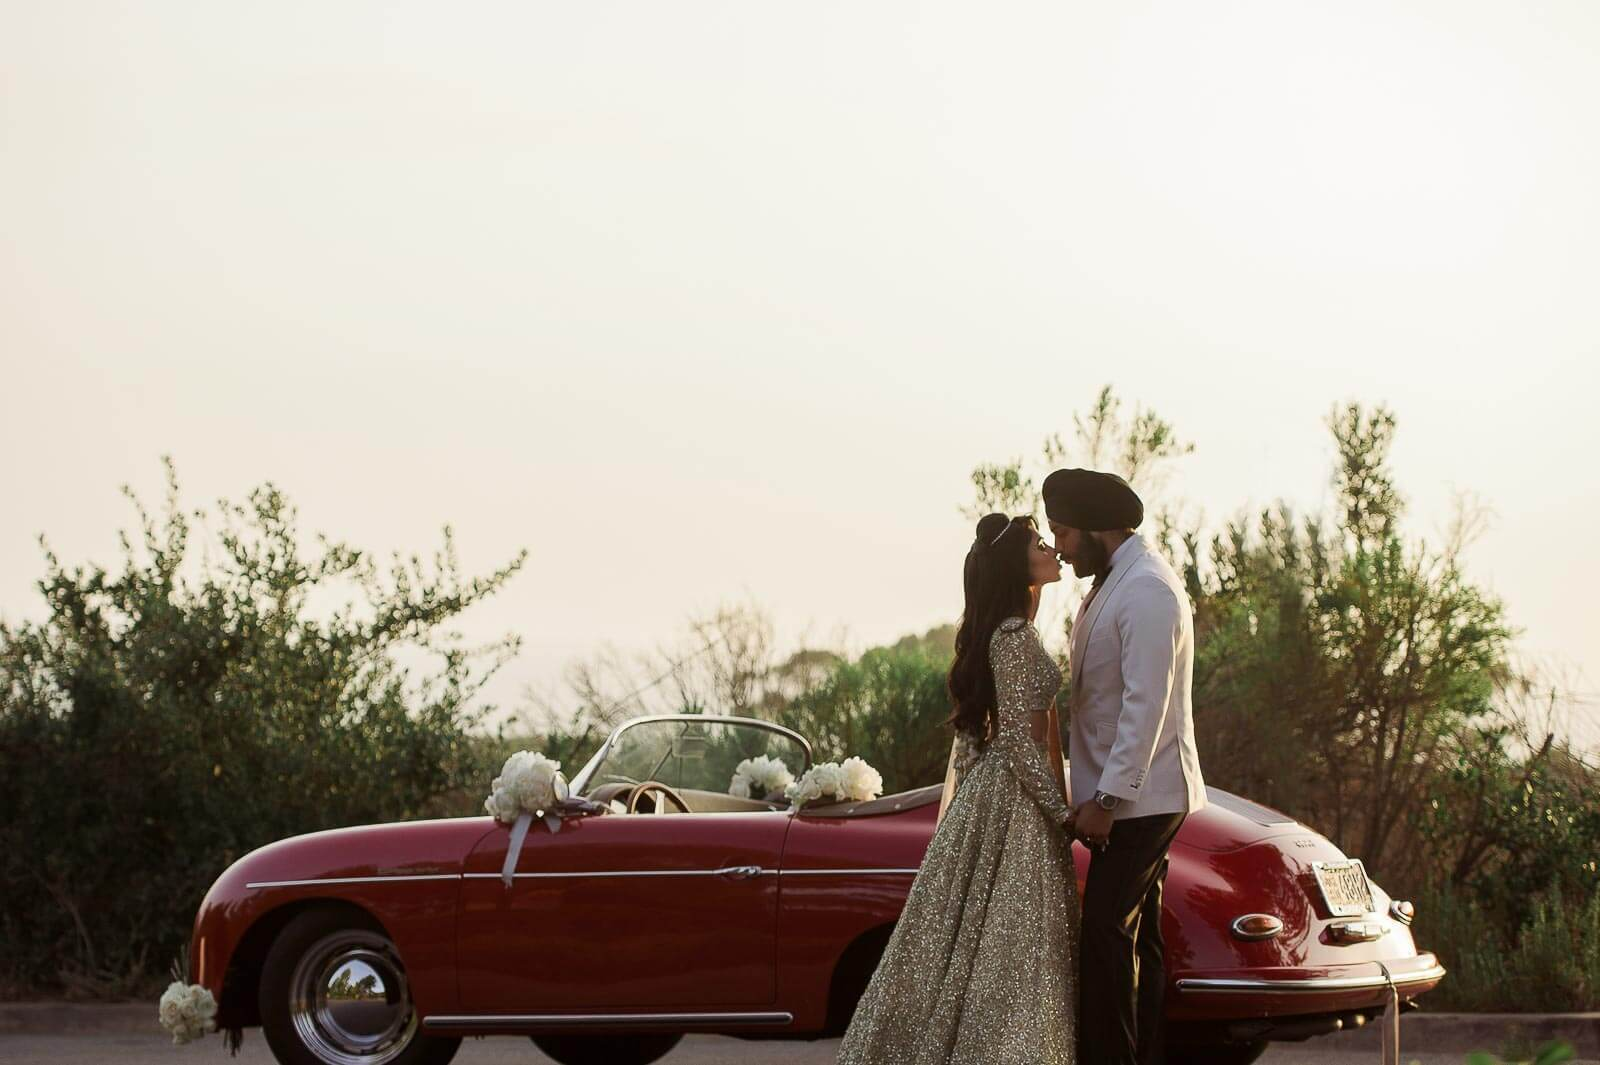 ClassPass CEO Payal Kadakia Wedding Photos